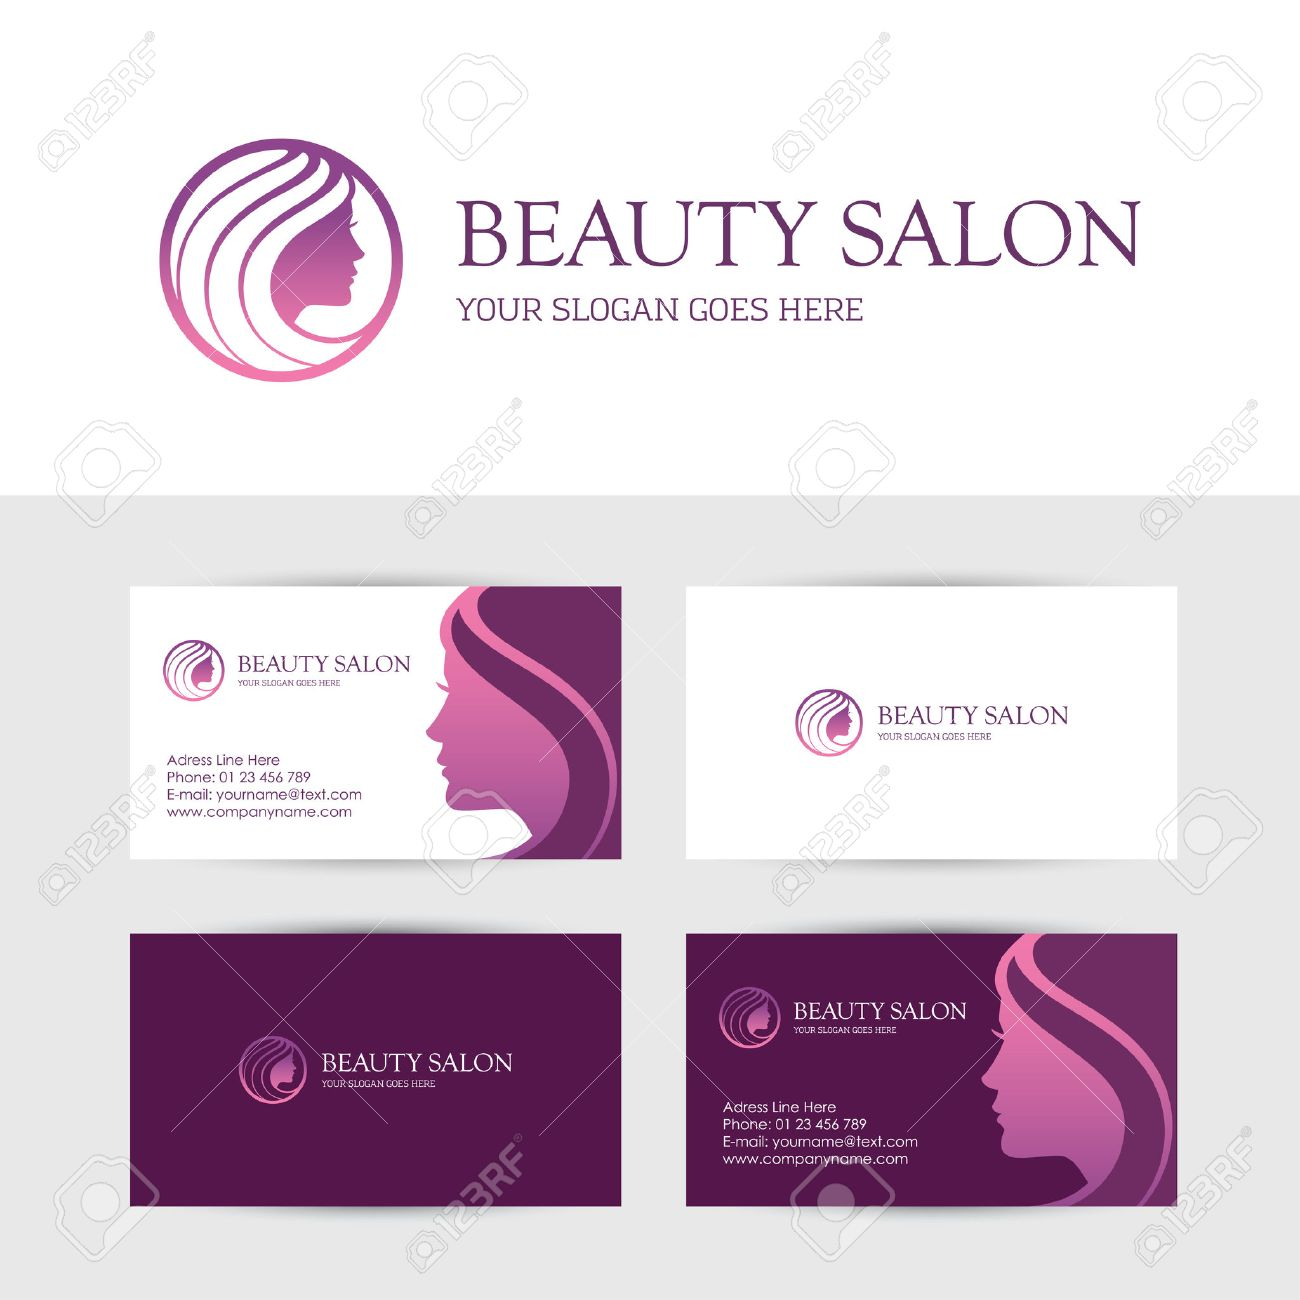 Business card design template for beauty or hair salon spa business card design template for beauty or hair salon spa cosmetics makeup cheaphphosting Images